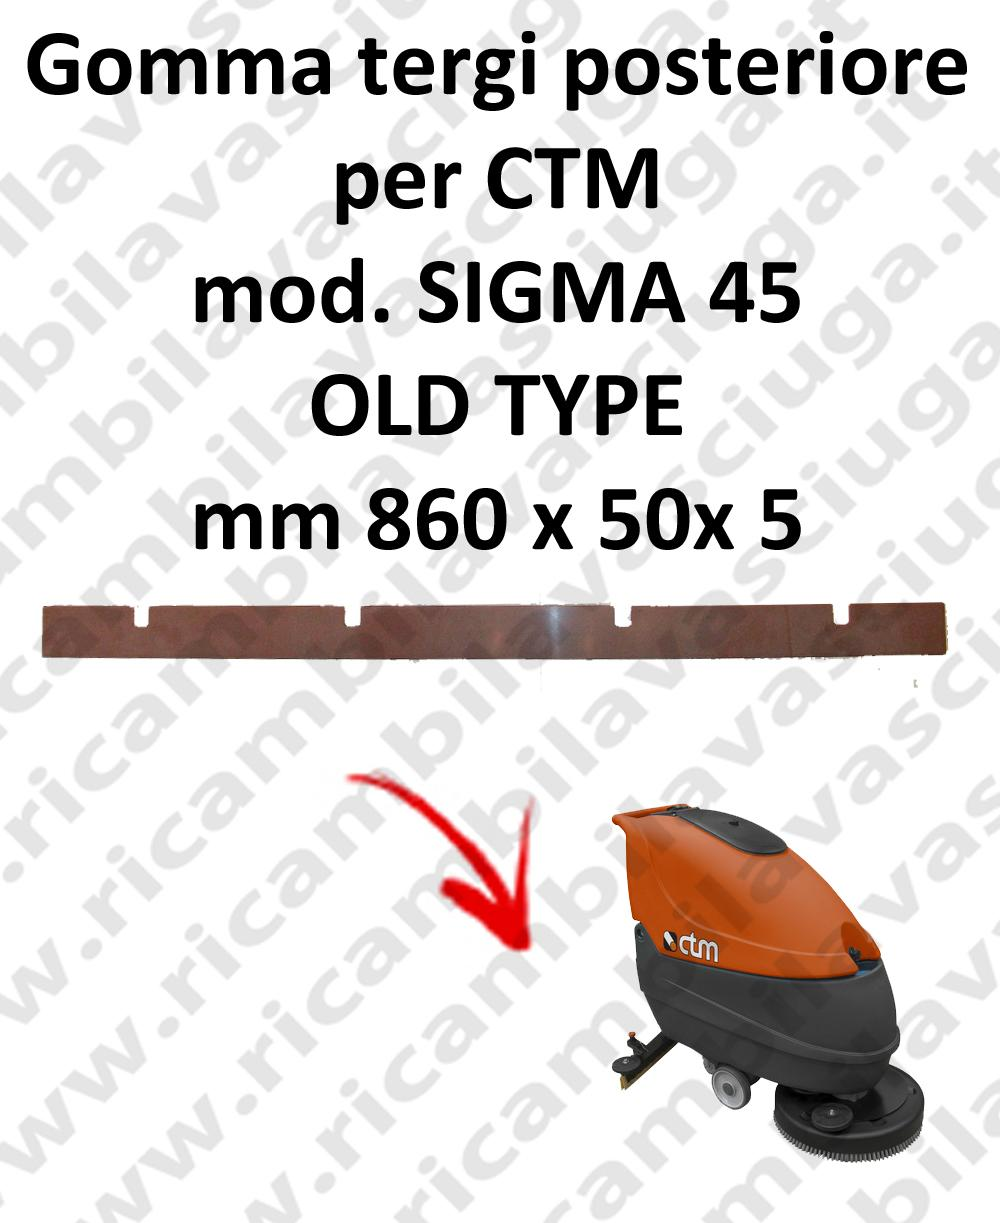 SIGMA 45 OLD TYPE squeegee rubber back for CTM